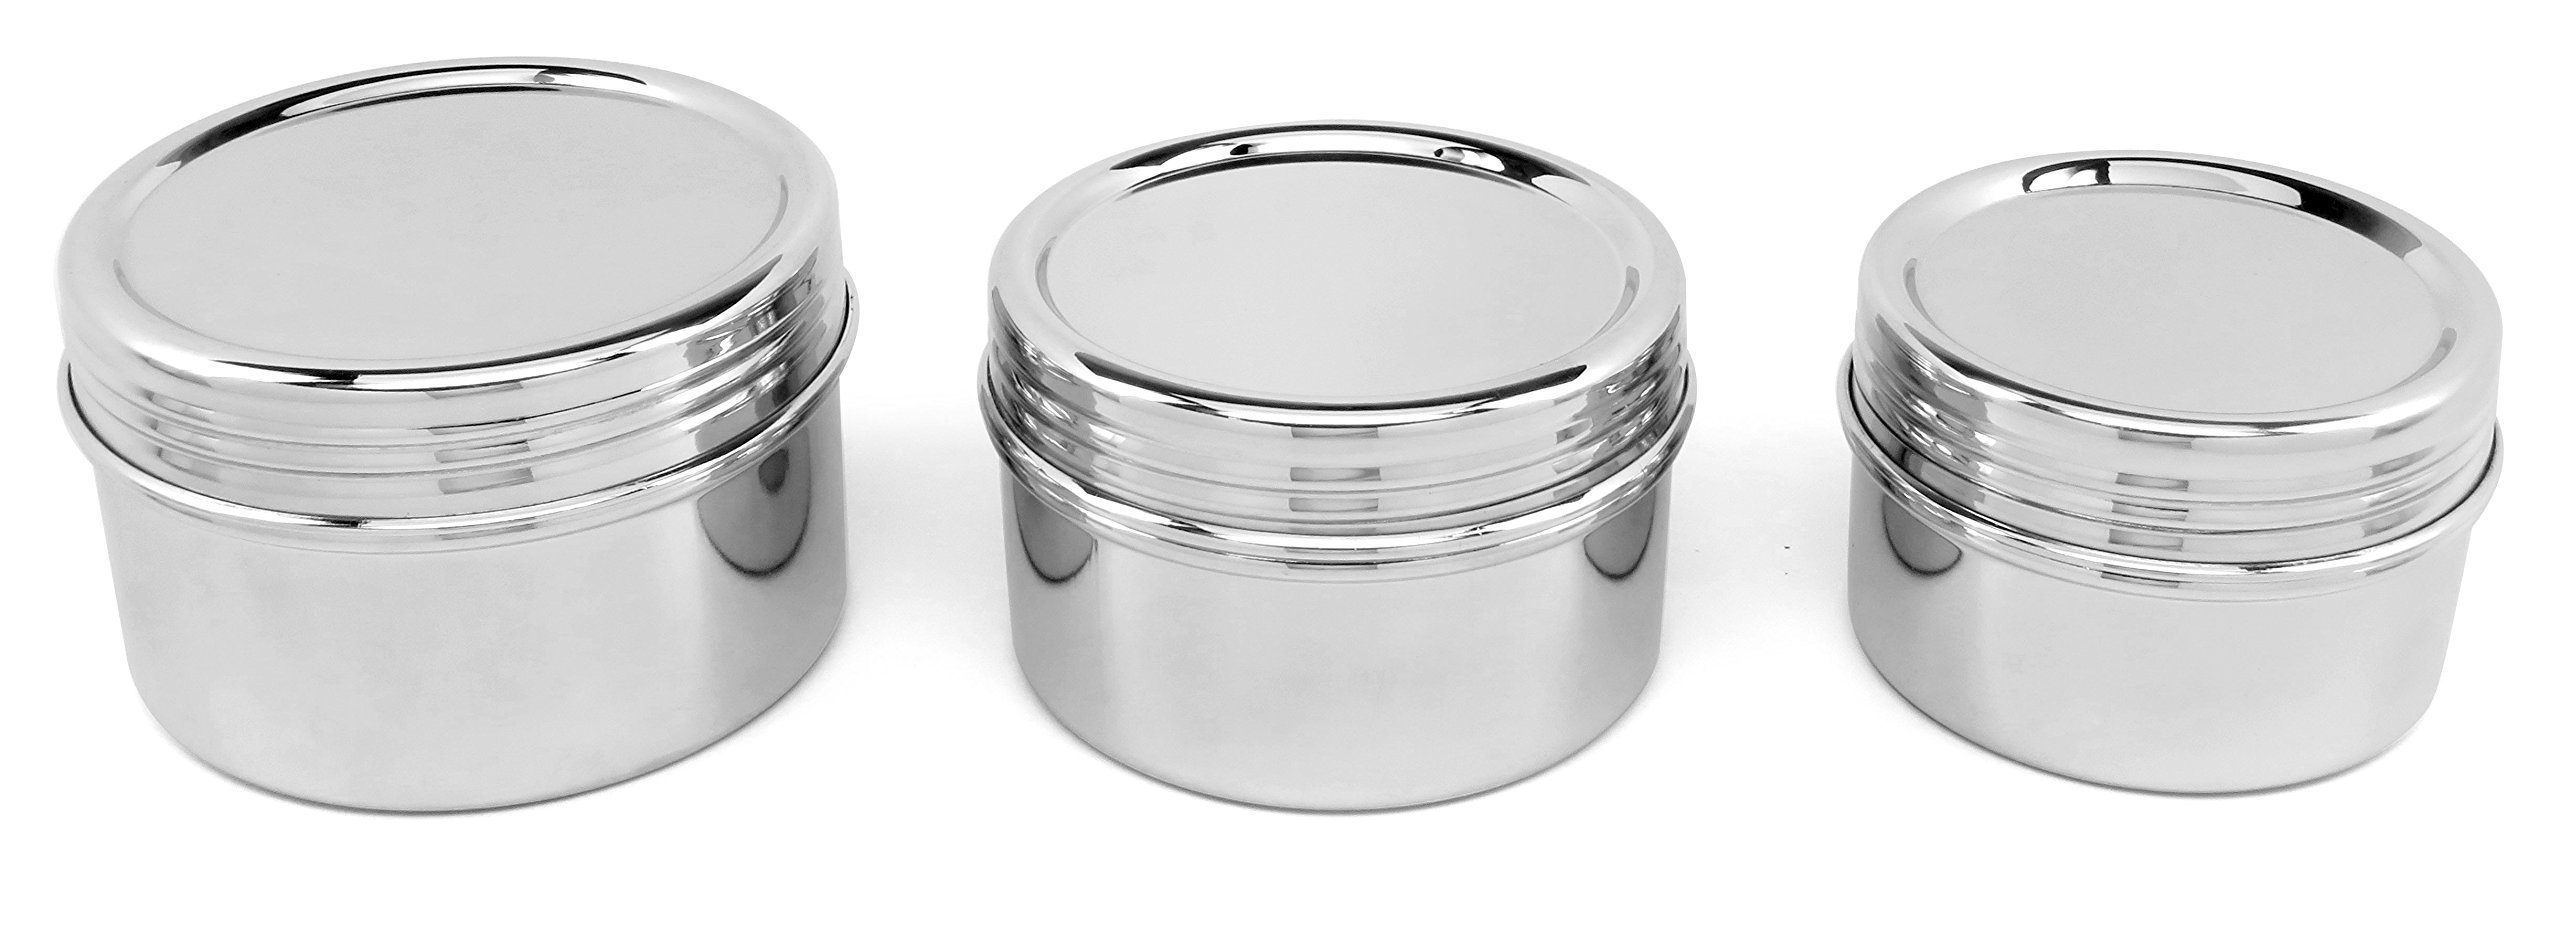 Lifestyle Block Stainless Steel 3 Piece Stainless Steel Lunchbox Canister Set with Screw On Lids